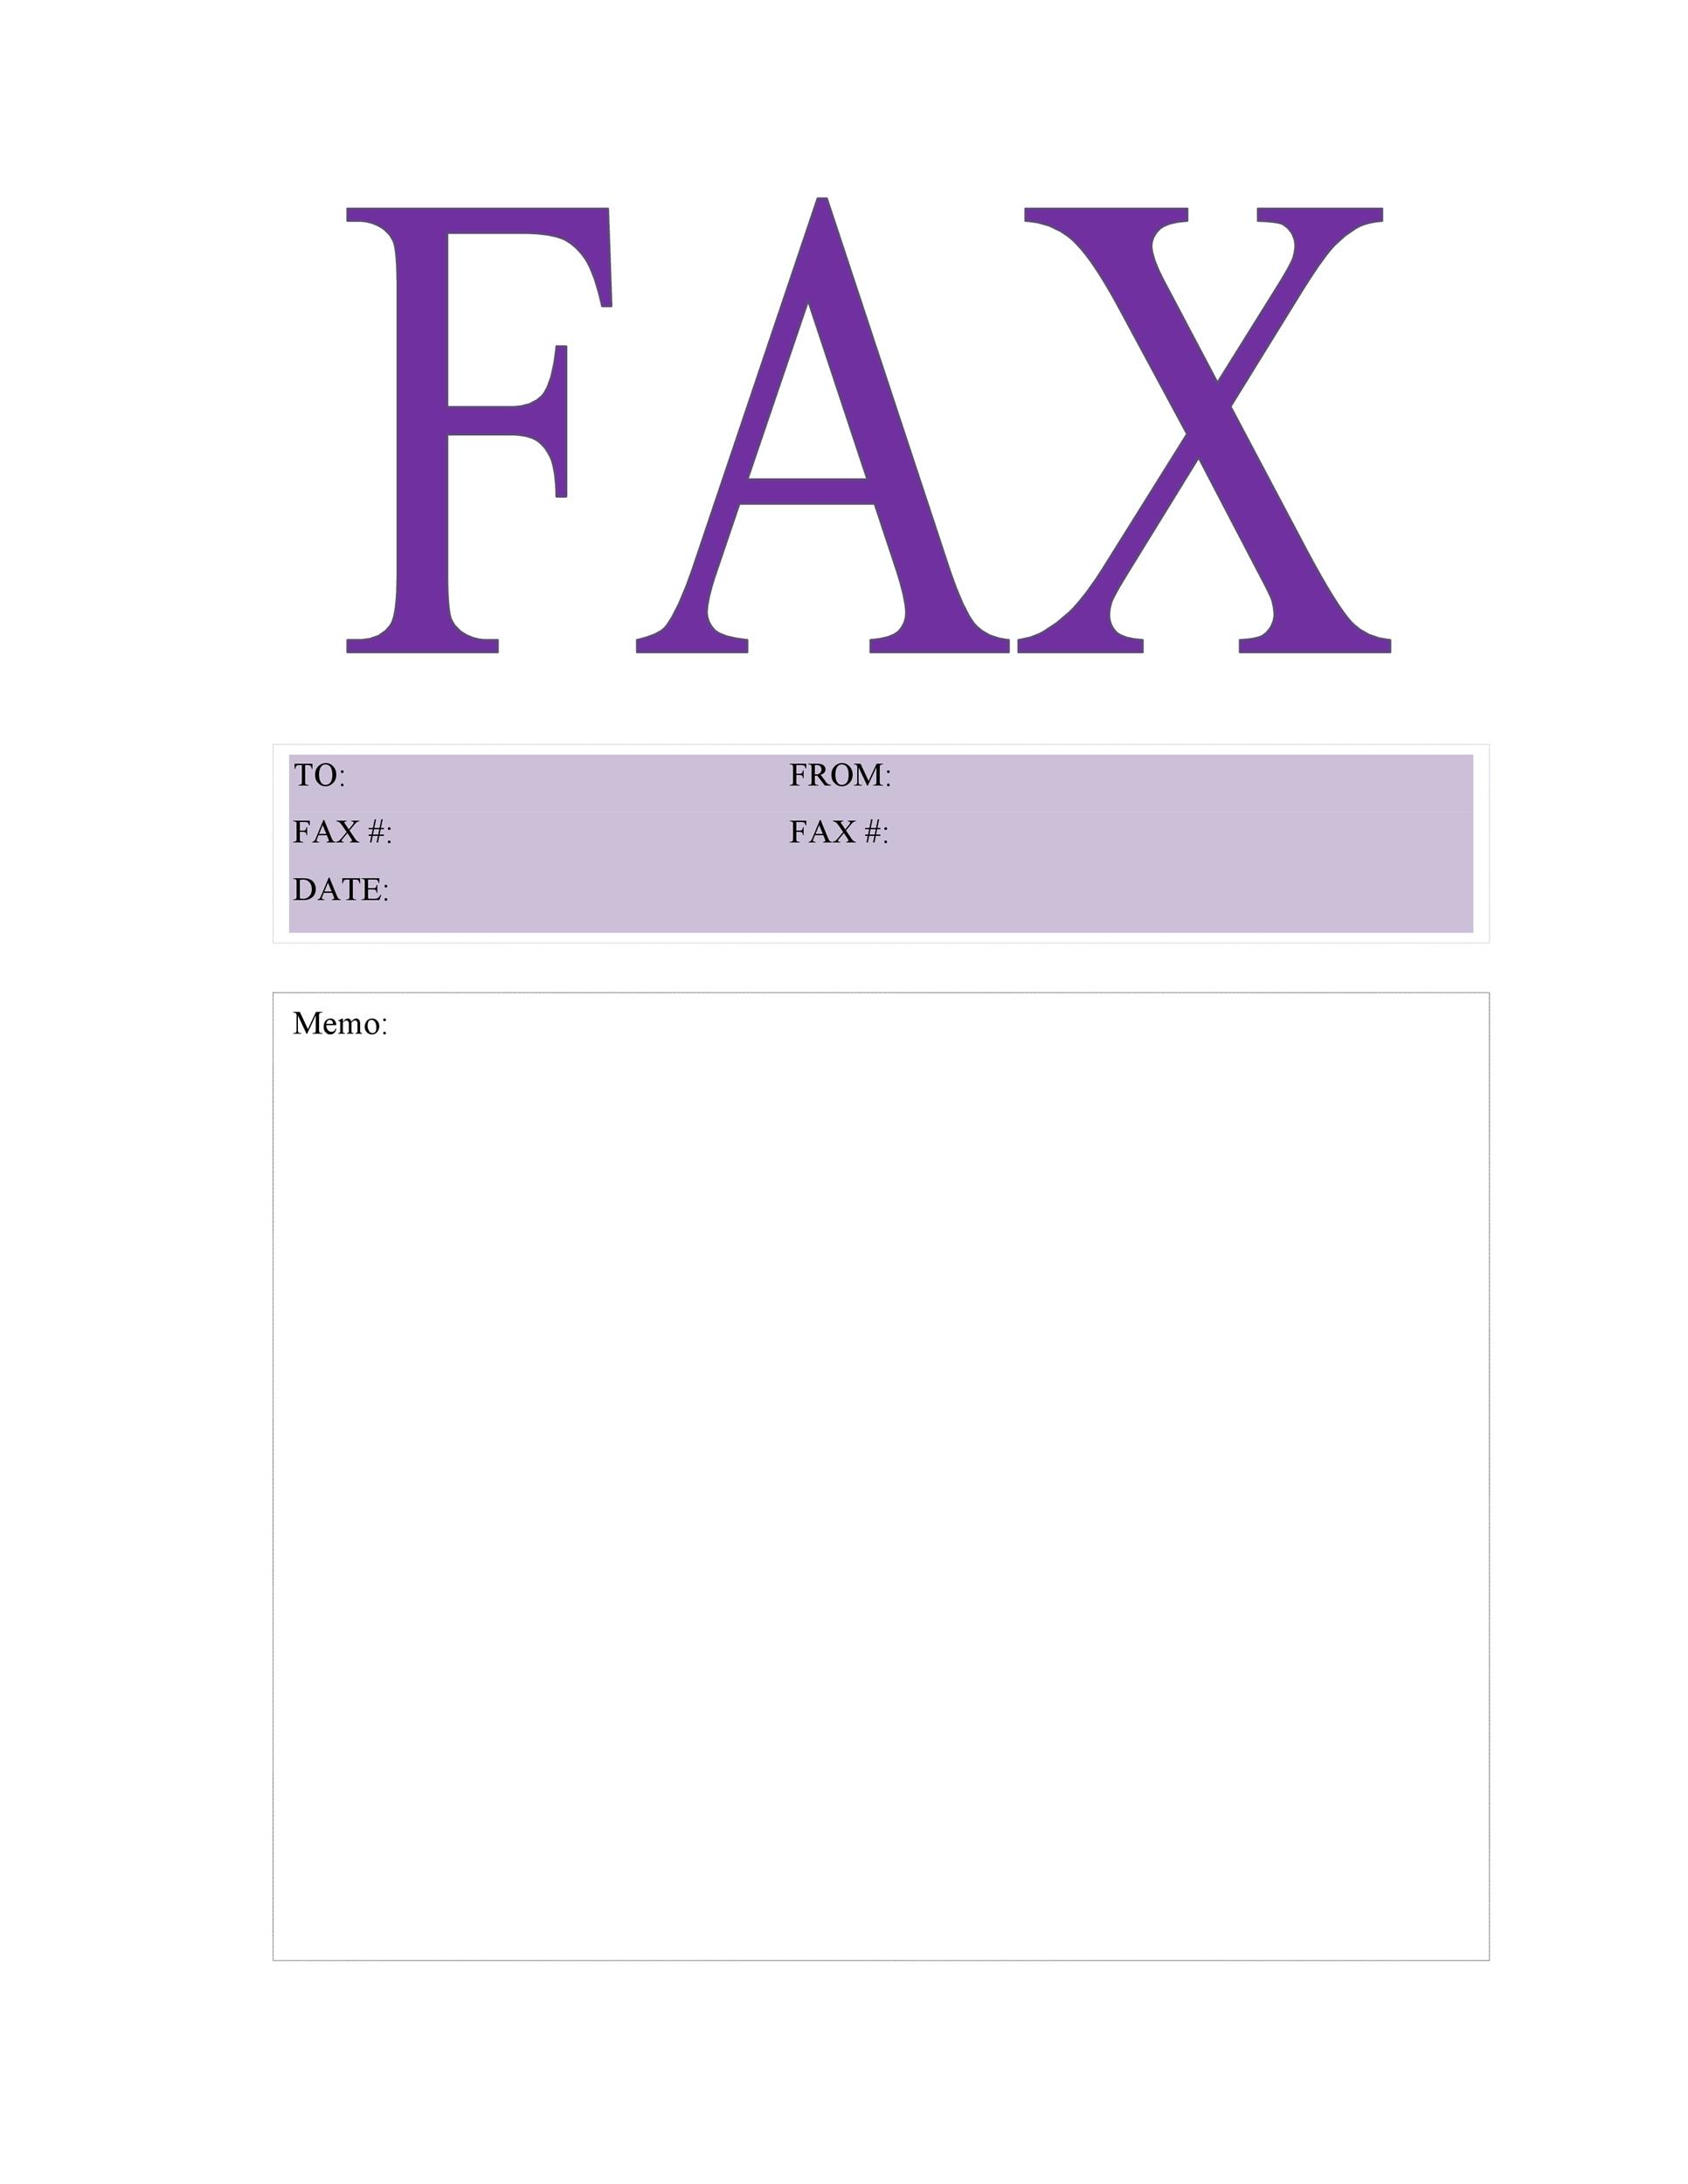 image relating to Printable Fax Cover Sheet Free called 40 Printable Fax Go over Sheet Templates ᐅ Template Lab